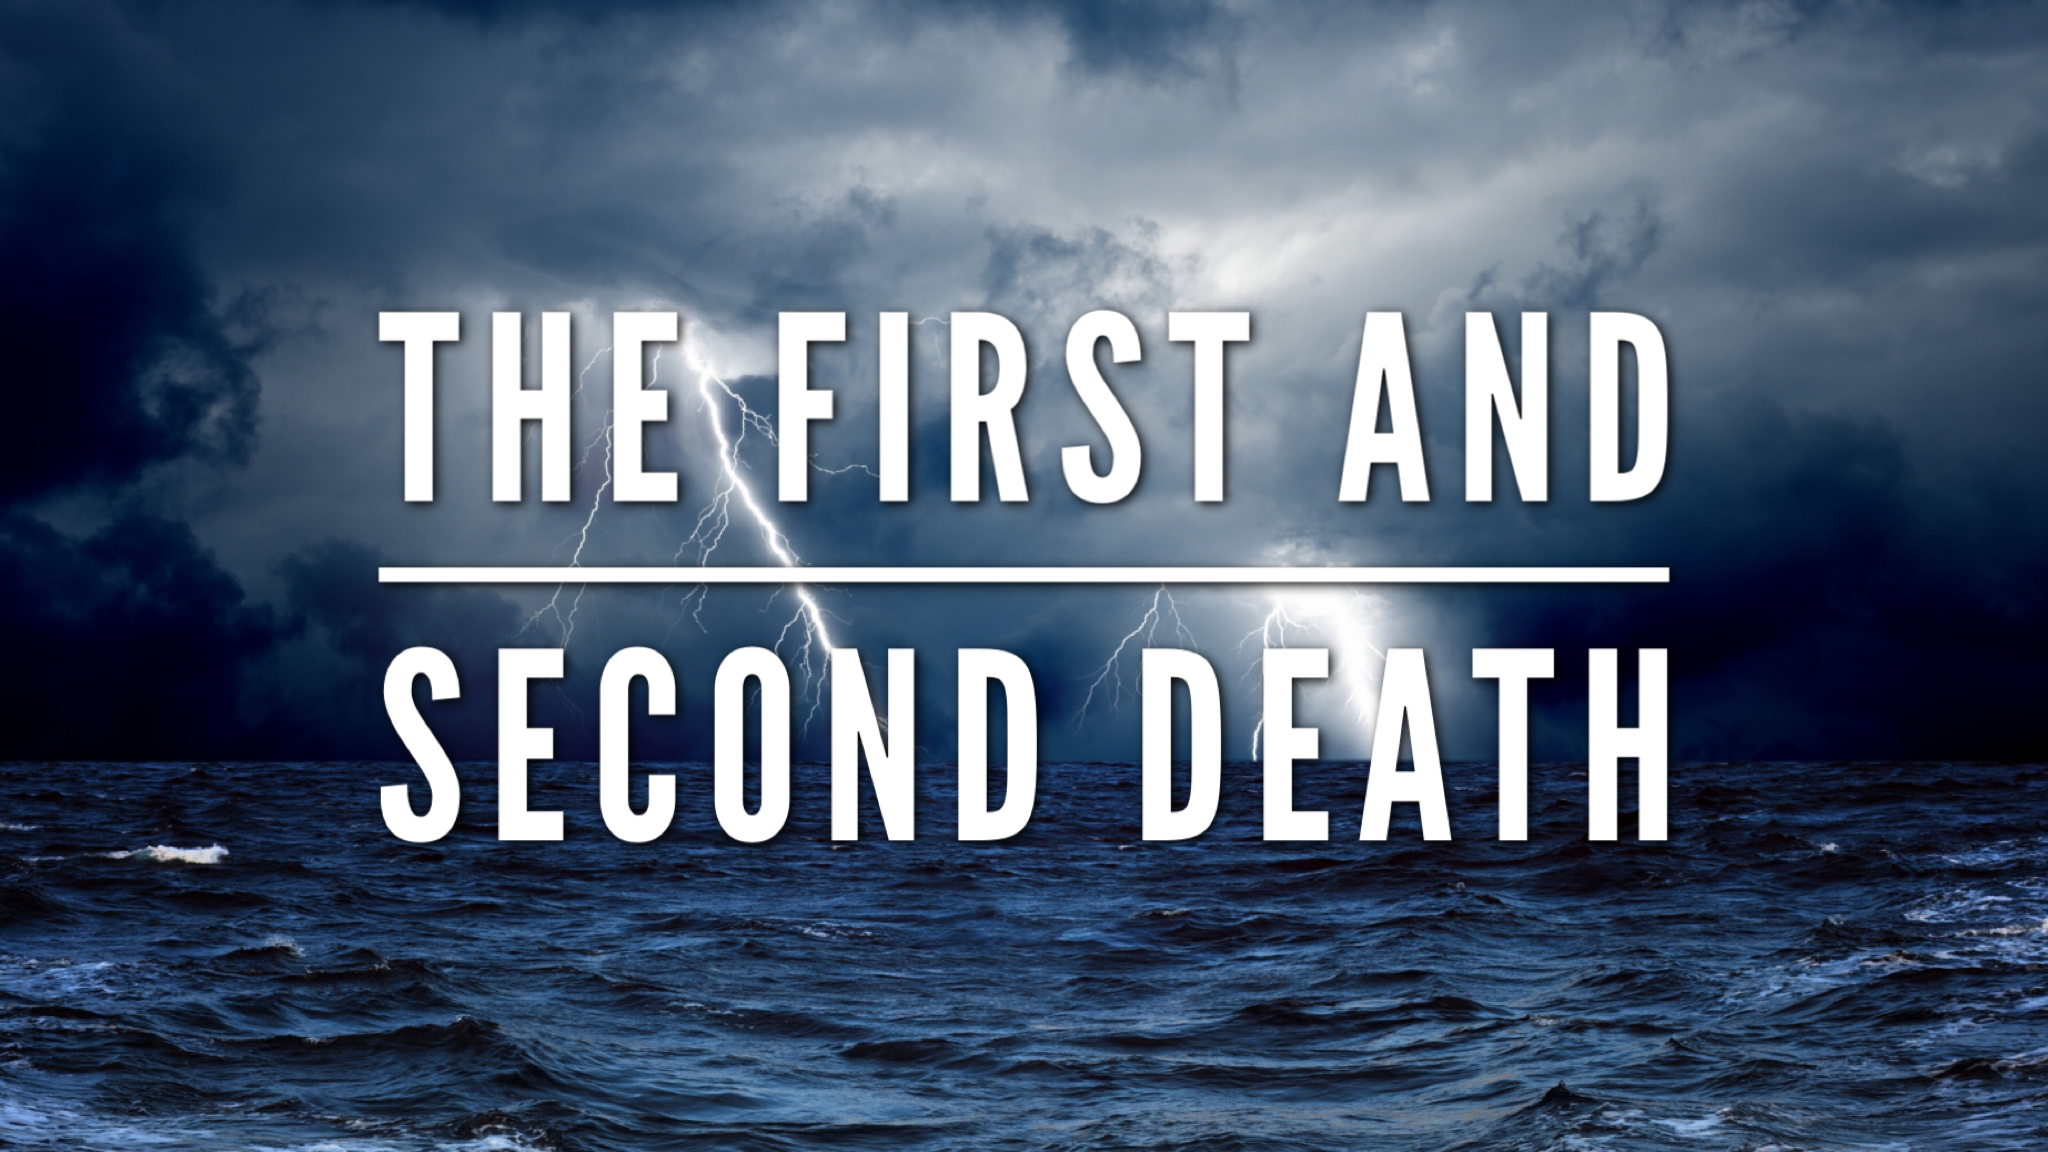 The First and Second Death